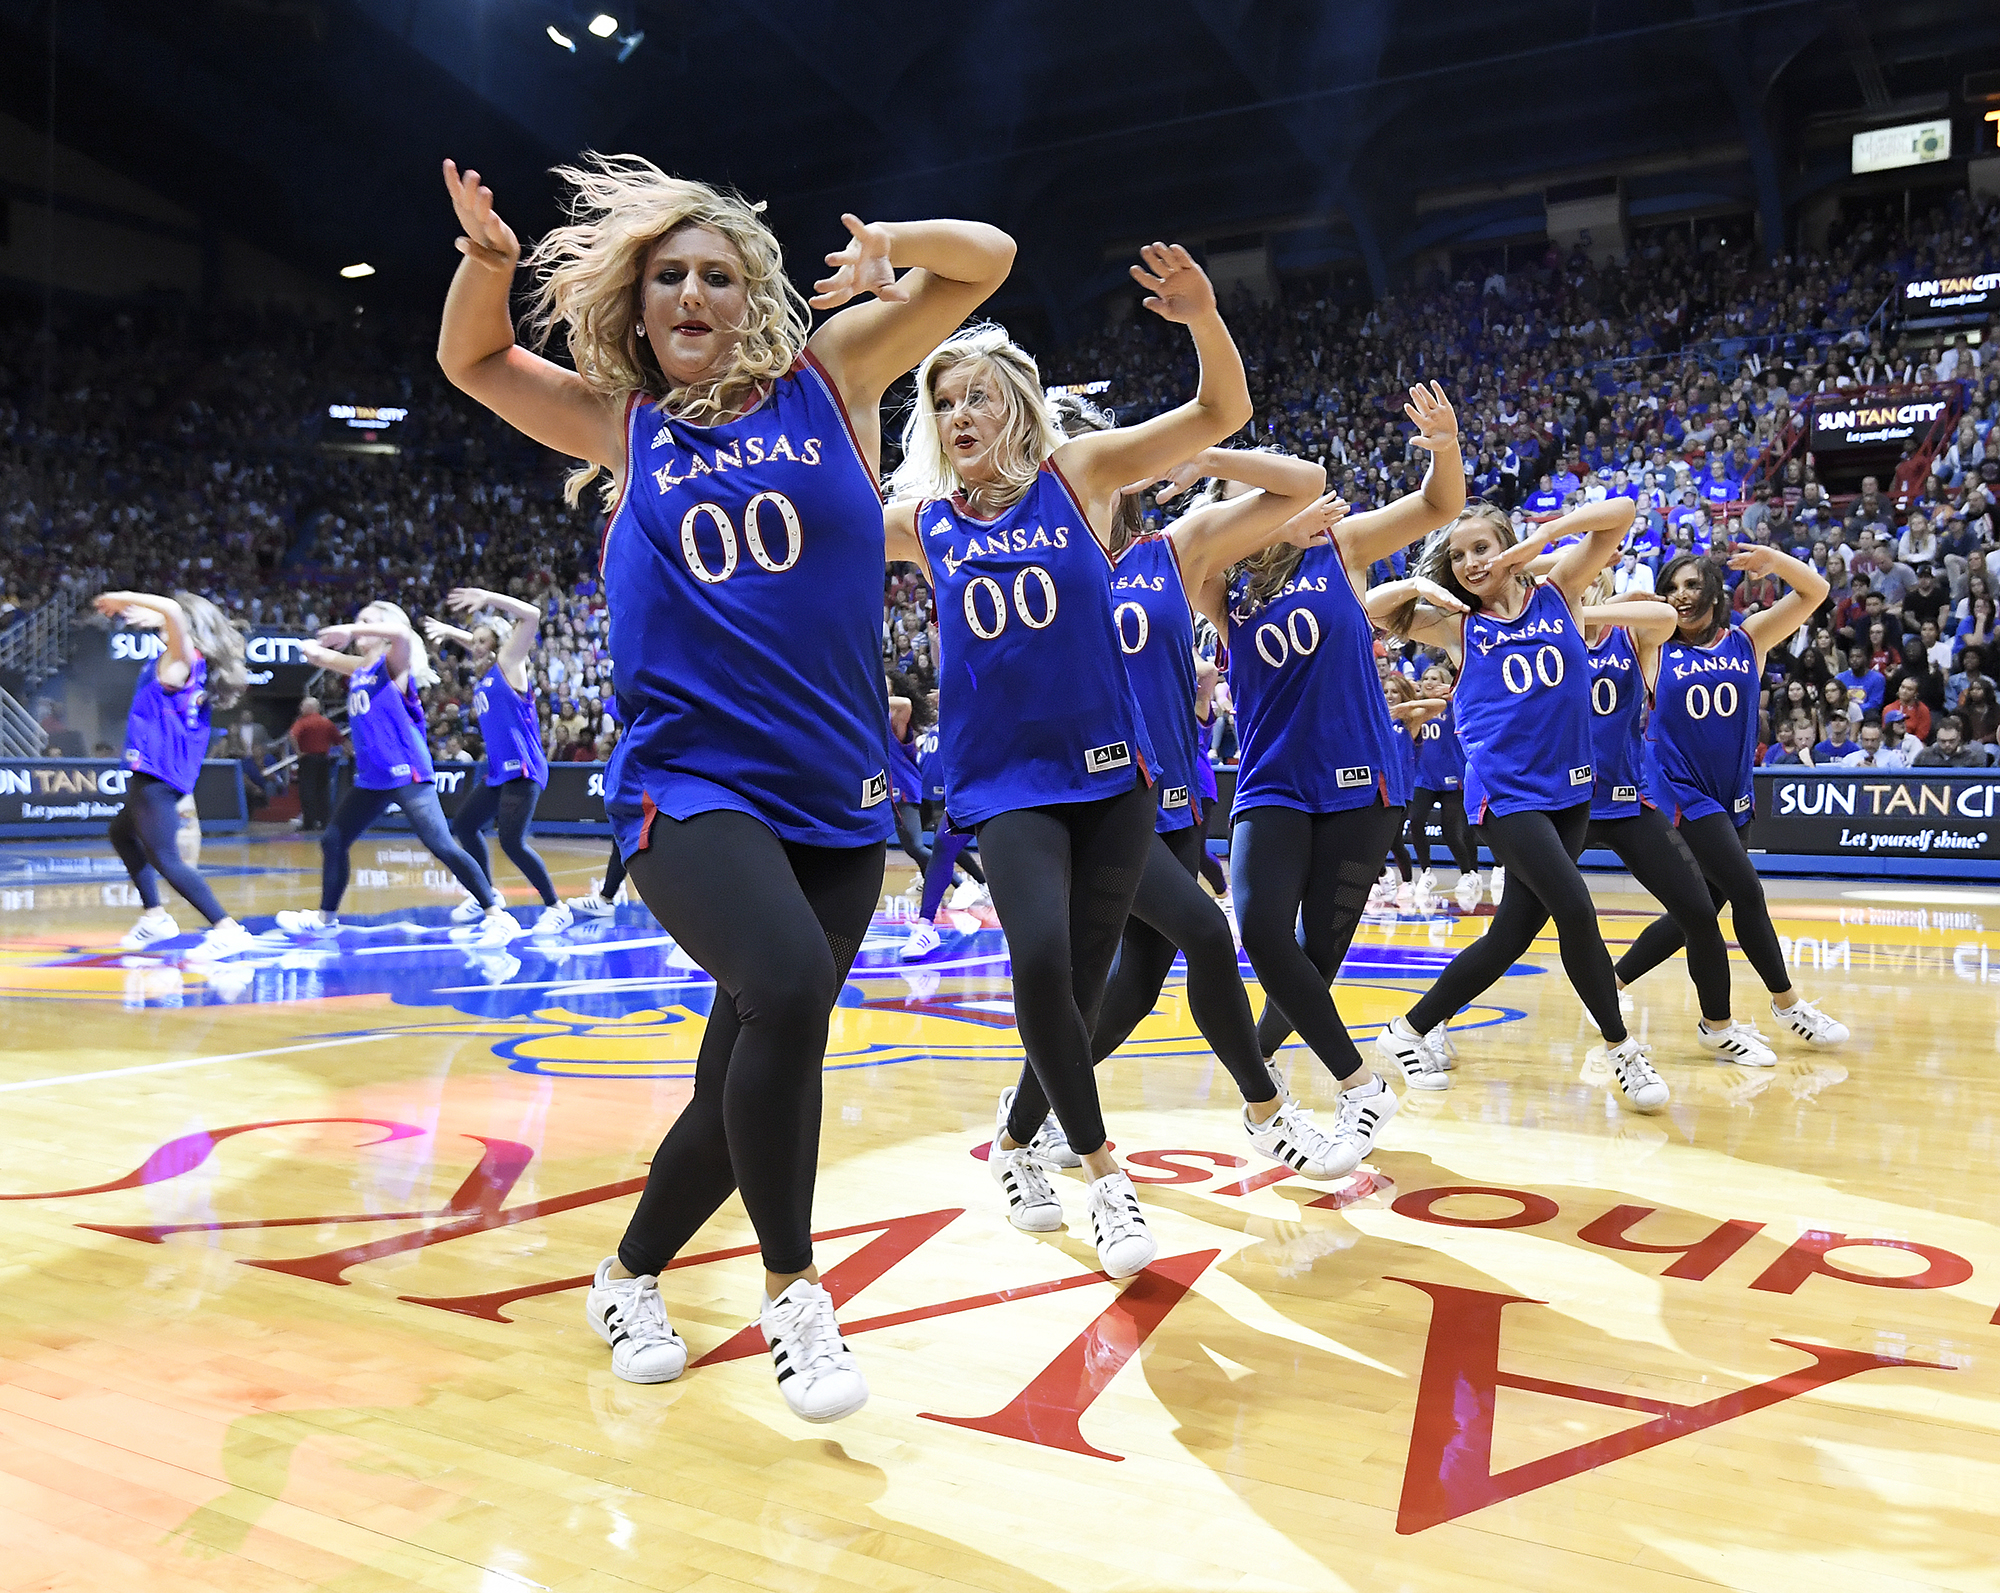 The Rock Chalk Dancers put on a show.